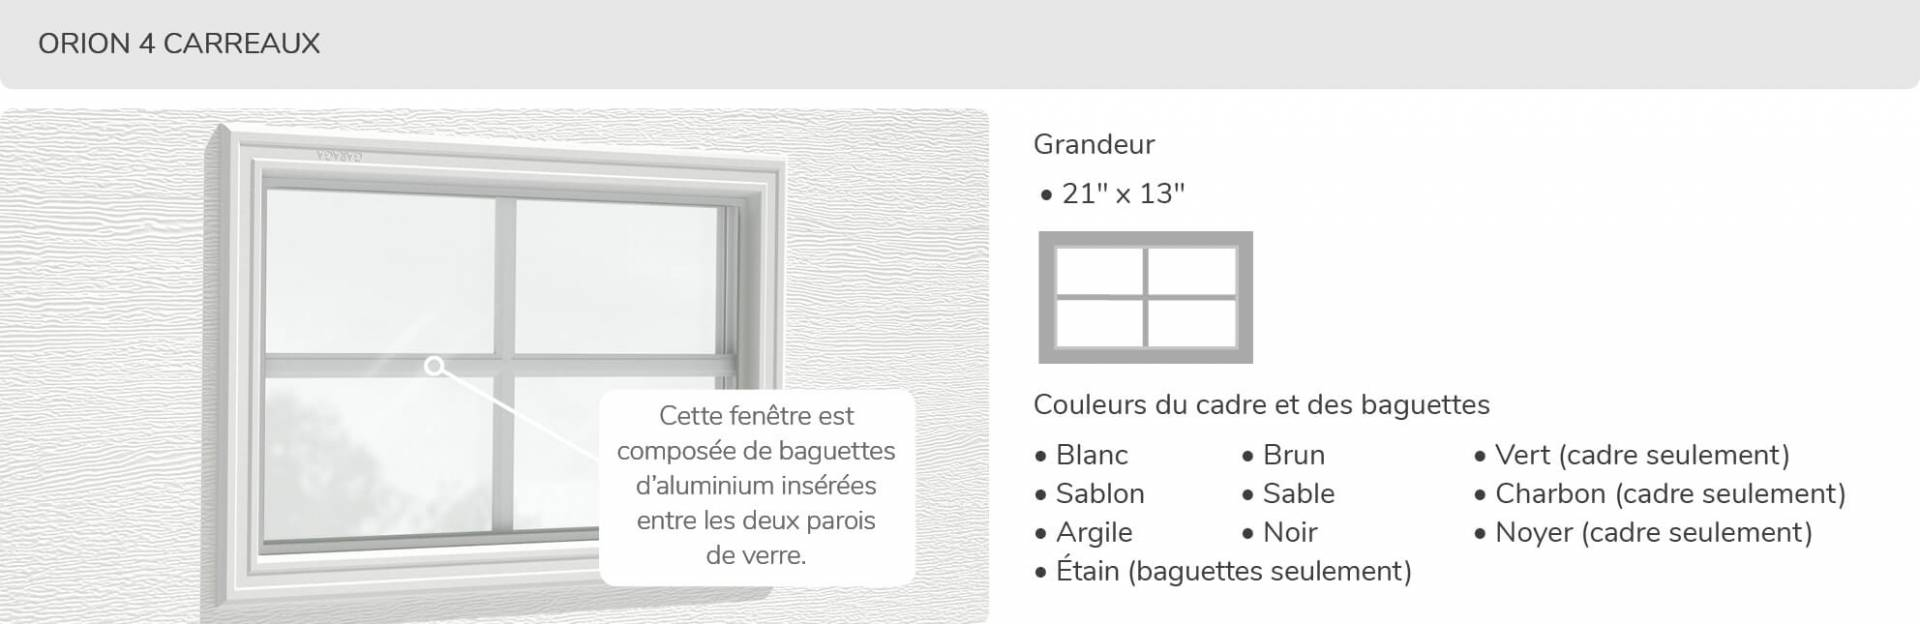 Orion 4 carreaux, 21' x 13', disponible pour la porte R-16